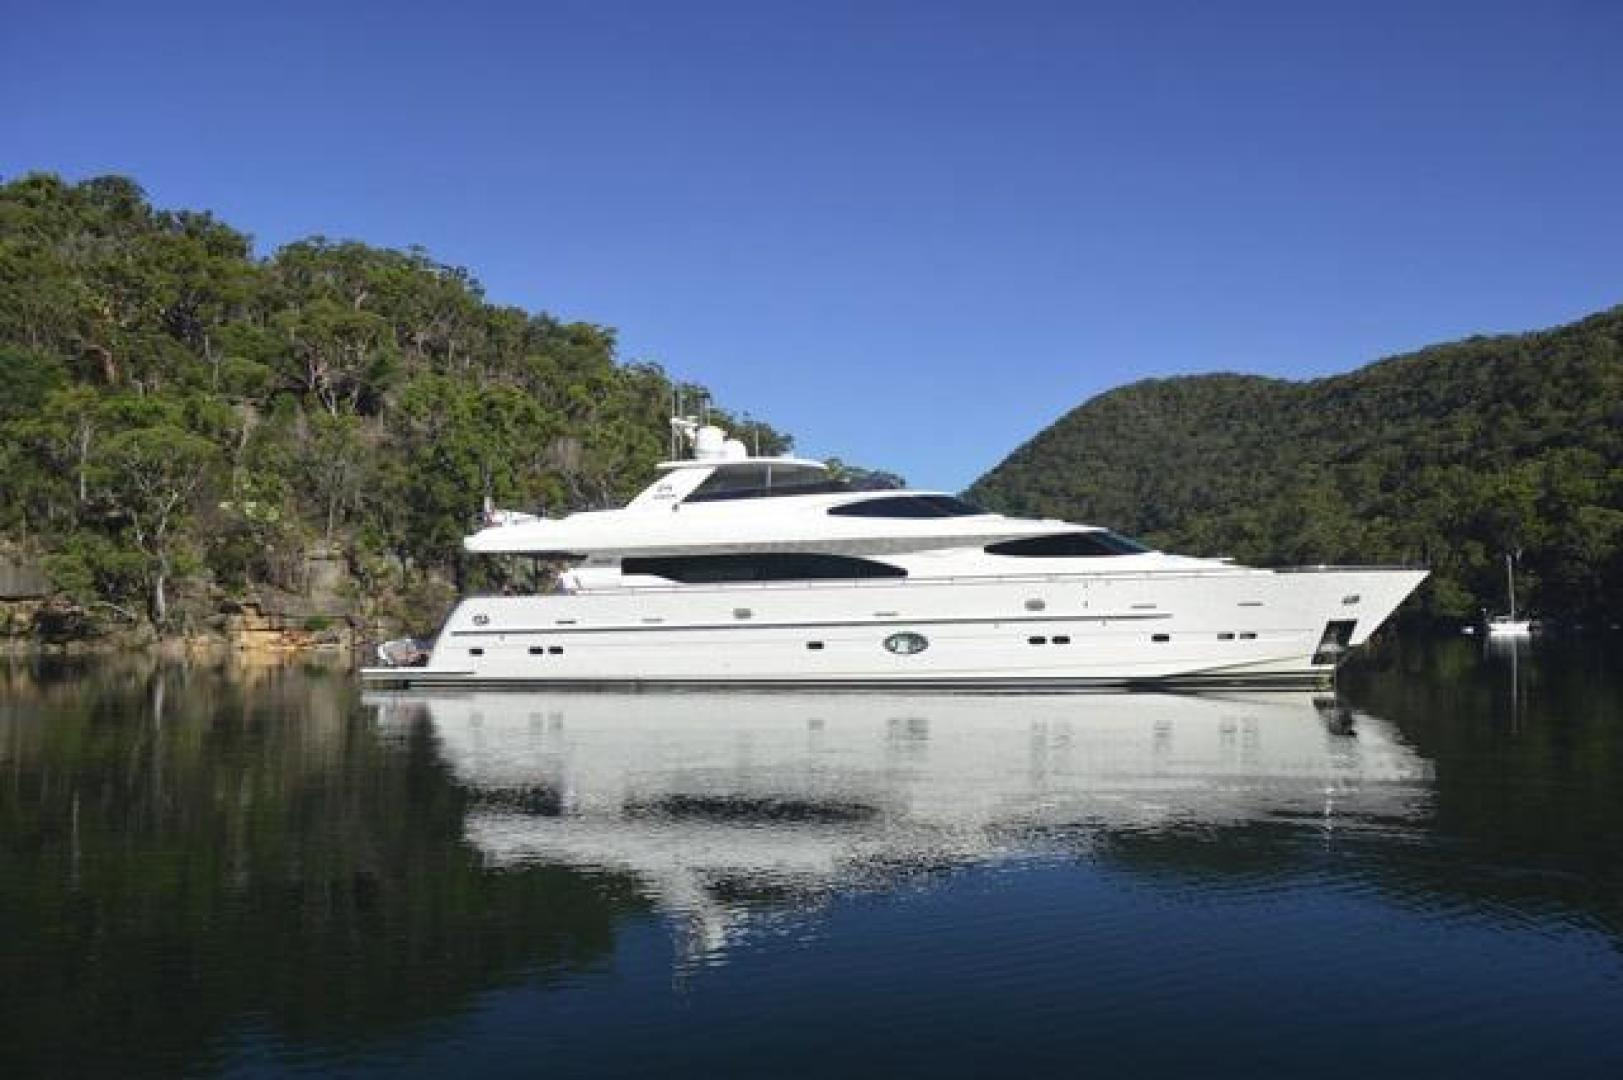 97' Horizon 2011 97 Motoryacht with Raised Pilothouse and Skylounge EnCore